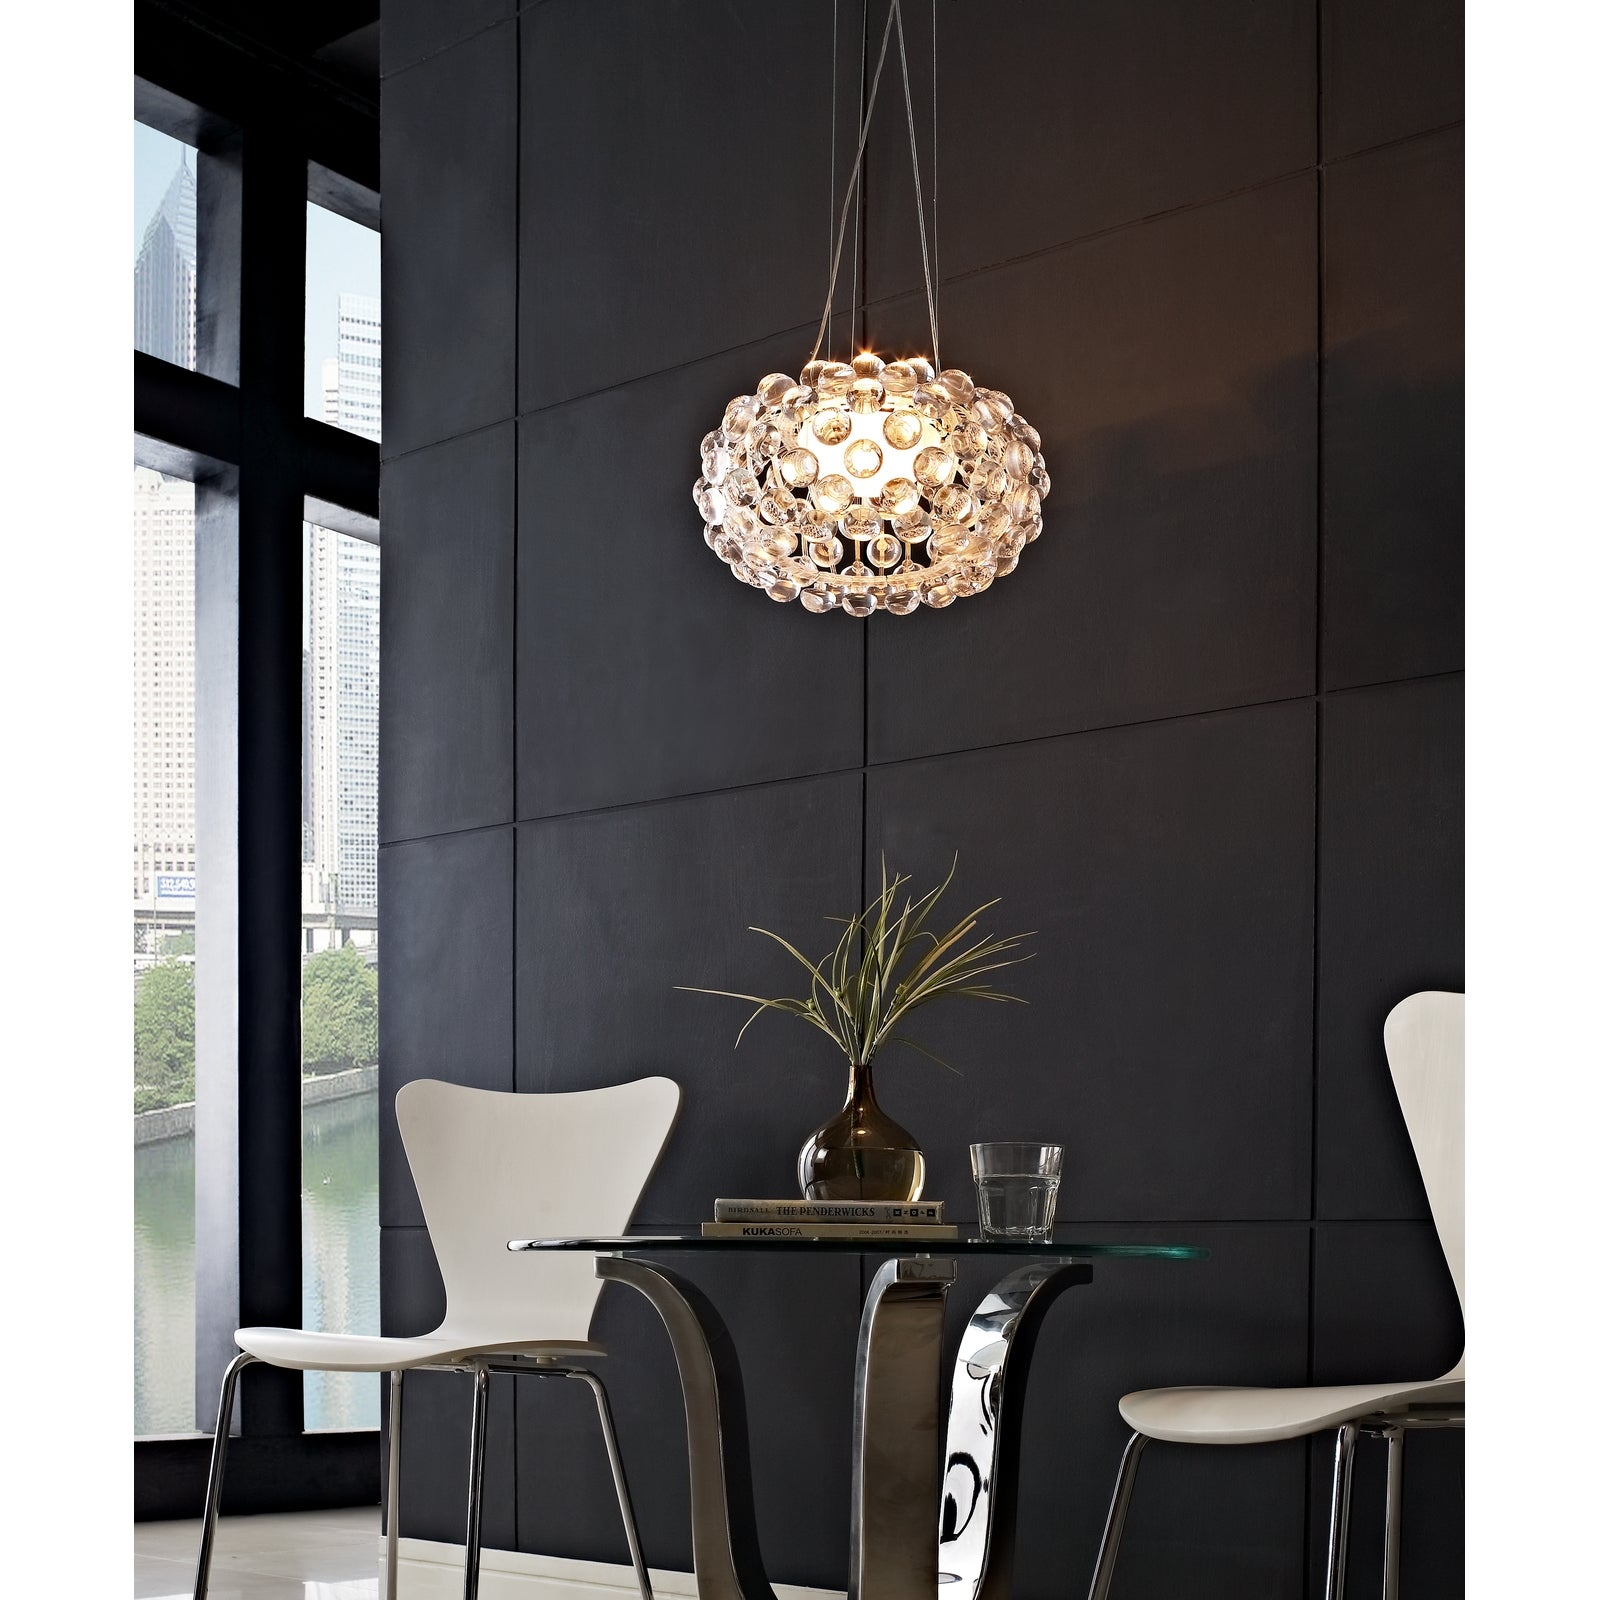 26 inch caboche style chandelier free shipping today overstock 26 inch caboche style chandelier free shipping today overstock 14846453 audiocablefo